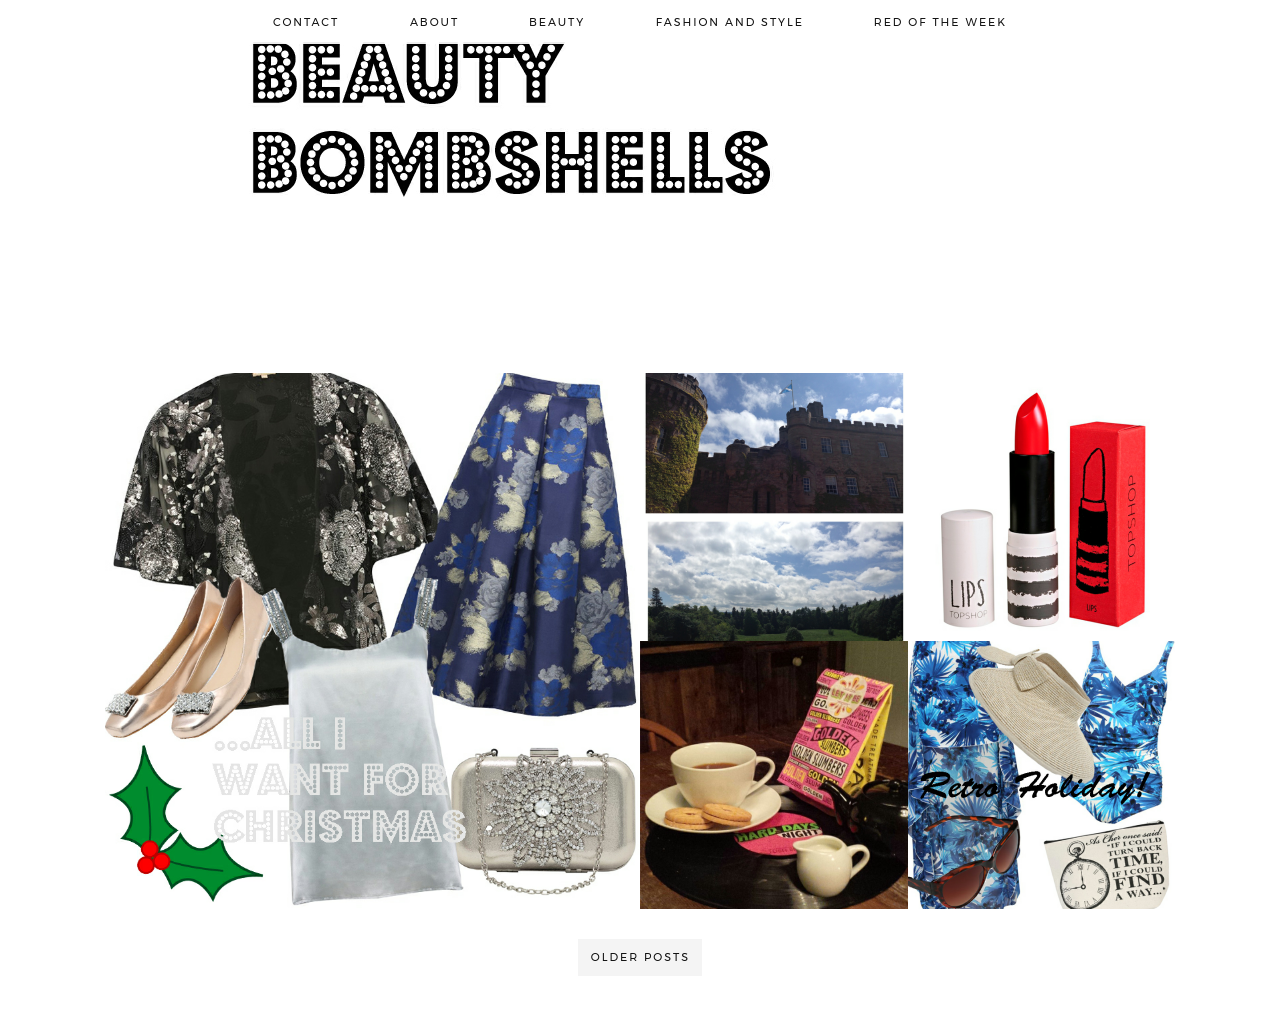 Beauty-Bombshells-Advertising-Reviews-Pricing